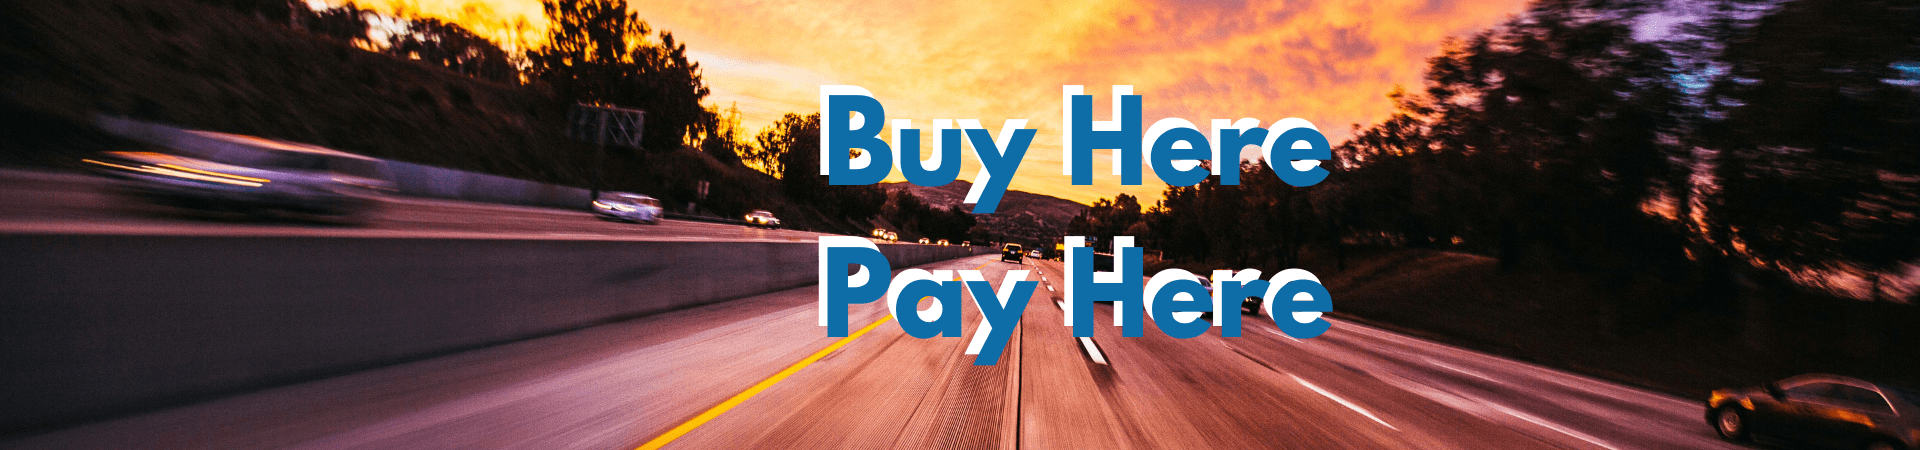 Buy Here Pay Here Car Dealership